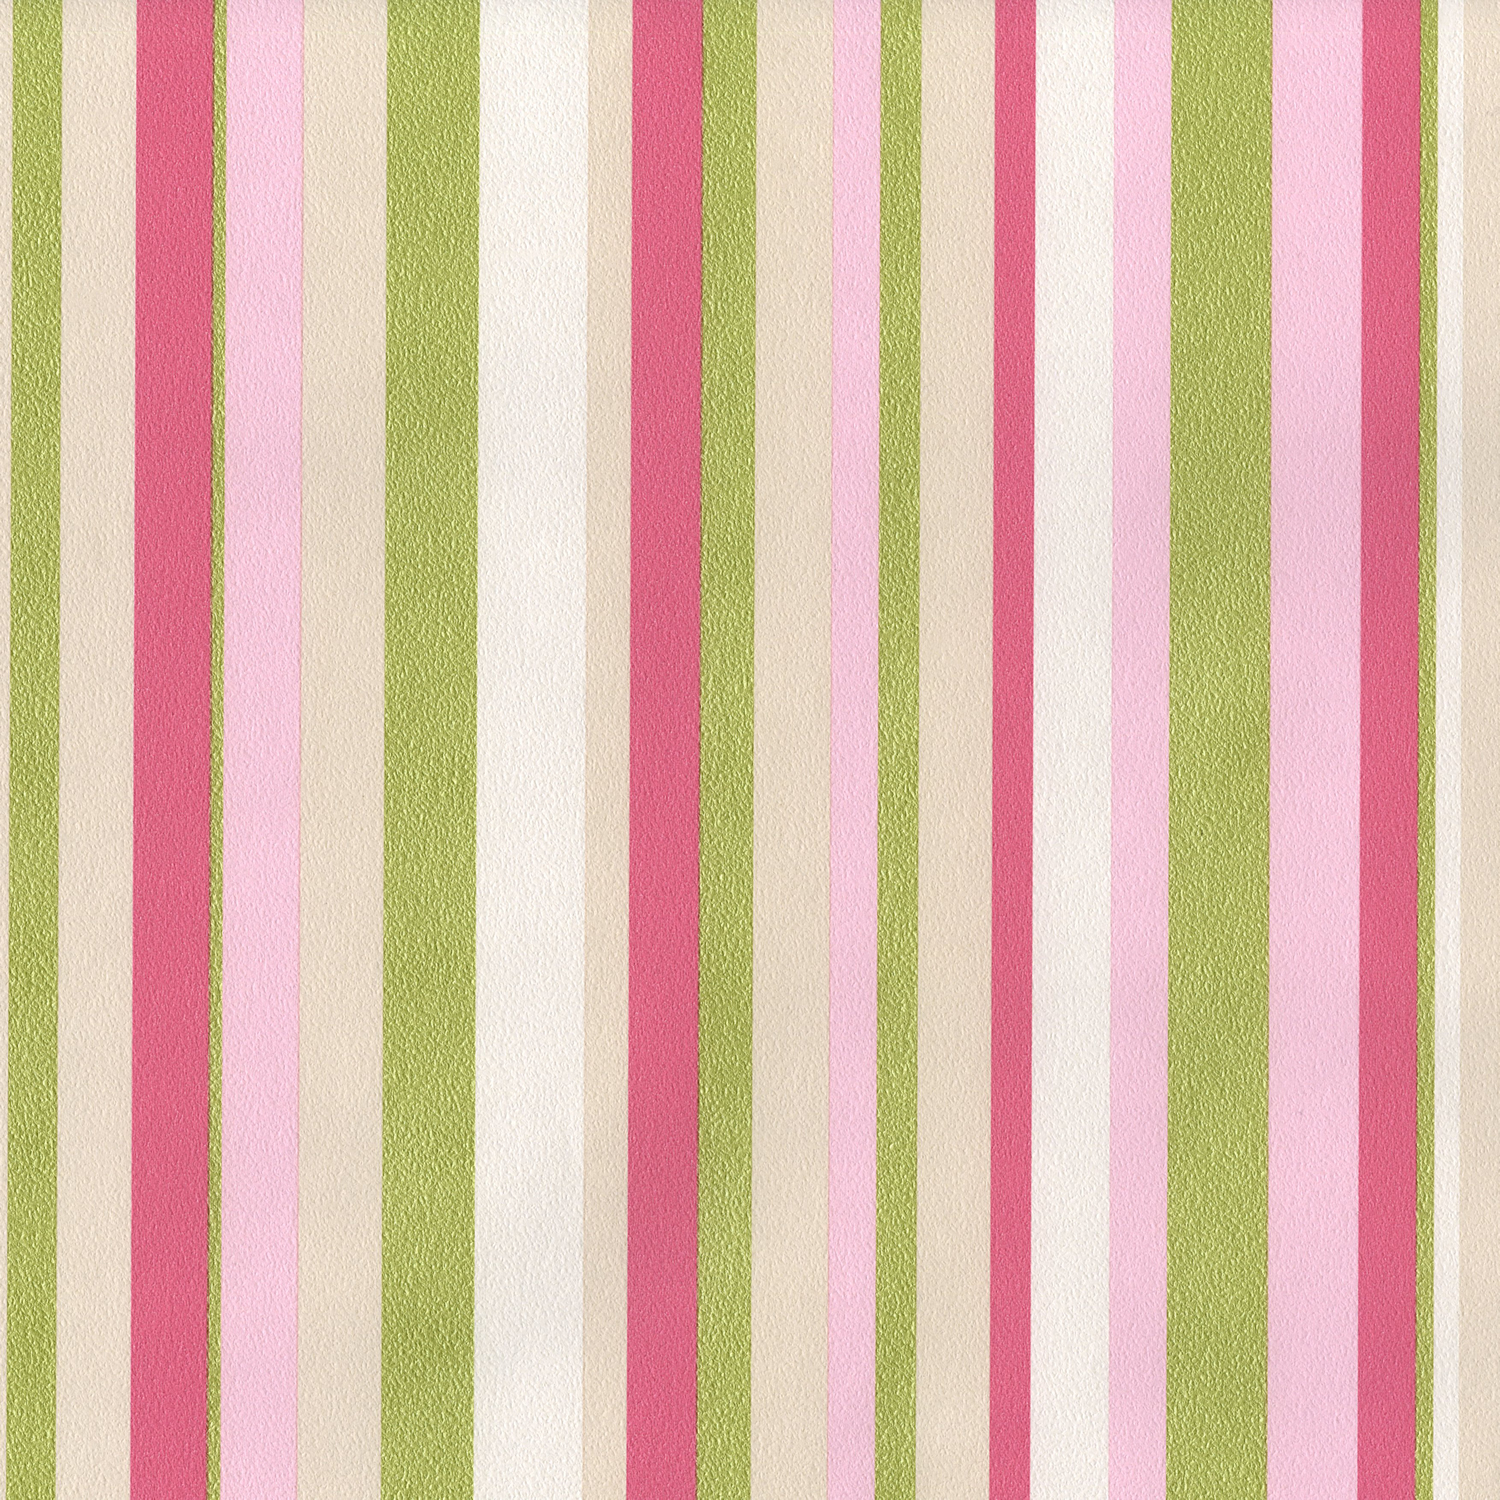 Muriva Rose Stripe Pink and Green Wallpaper 8m Roll Next Day 1500x1500